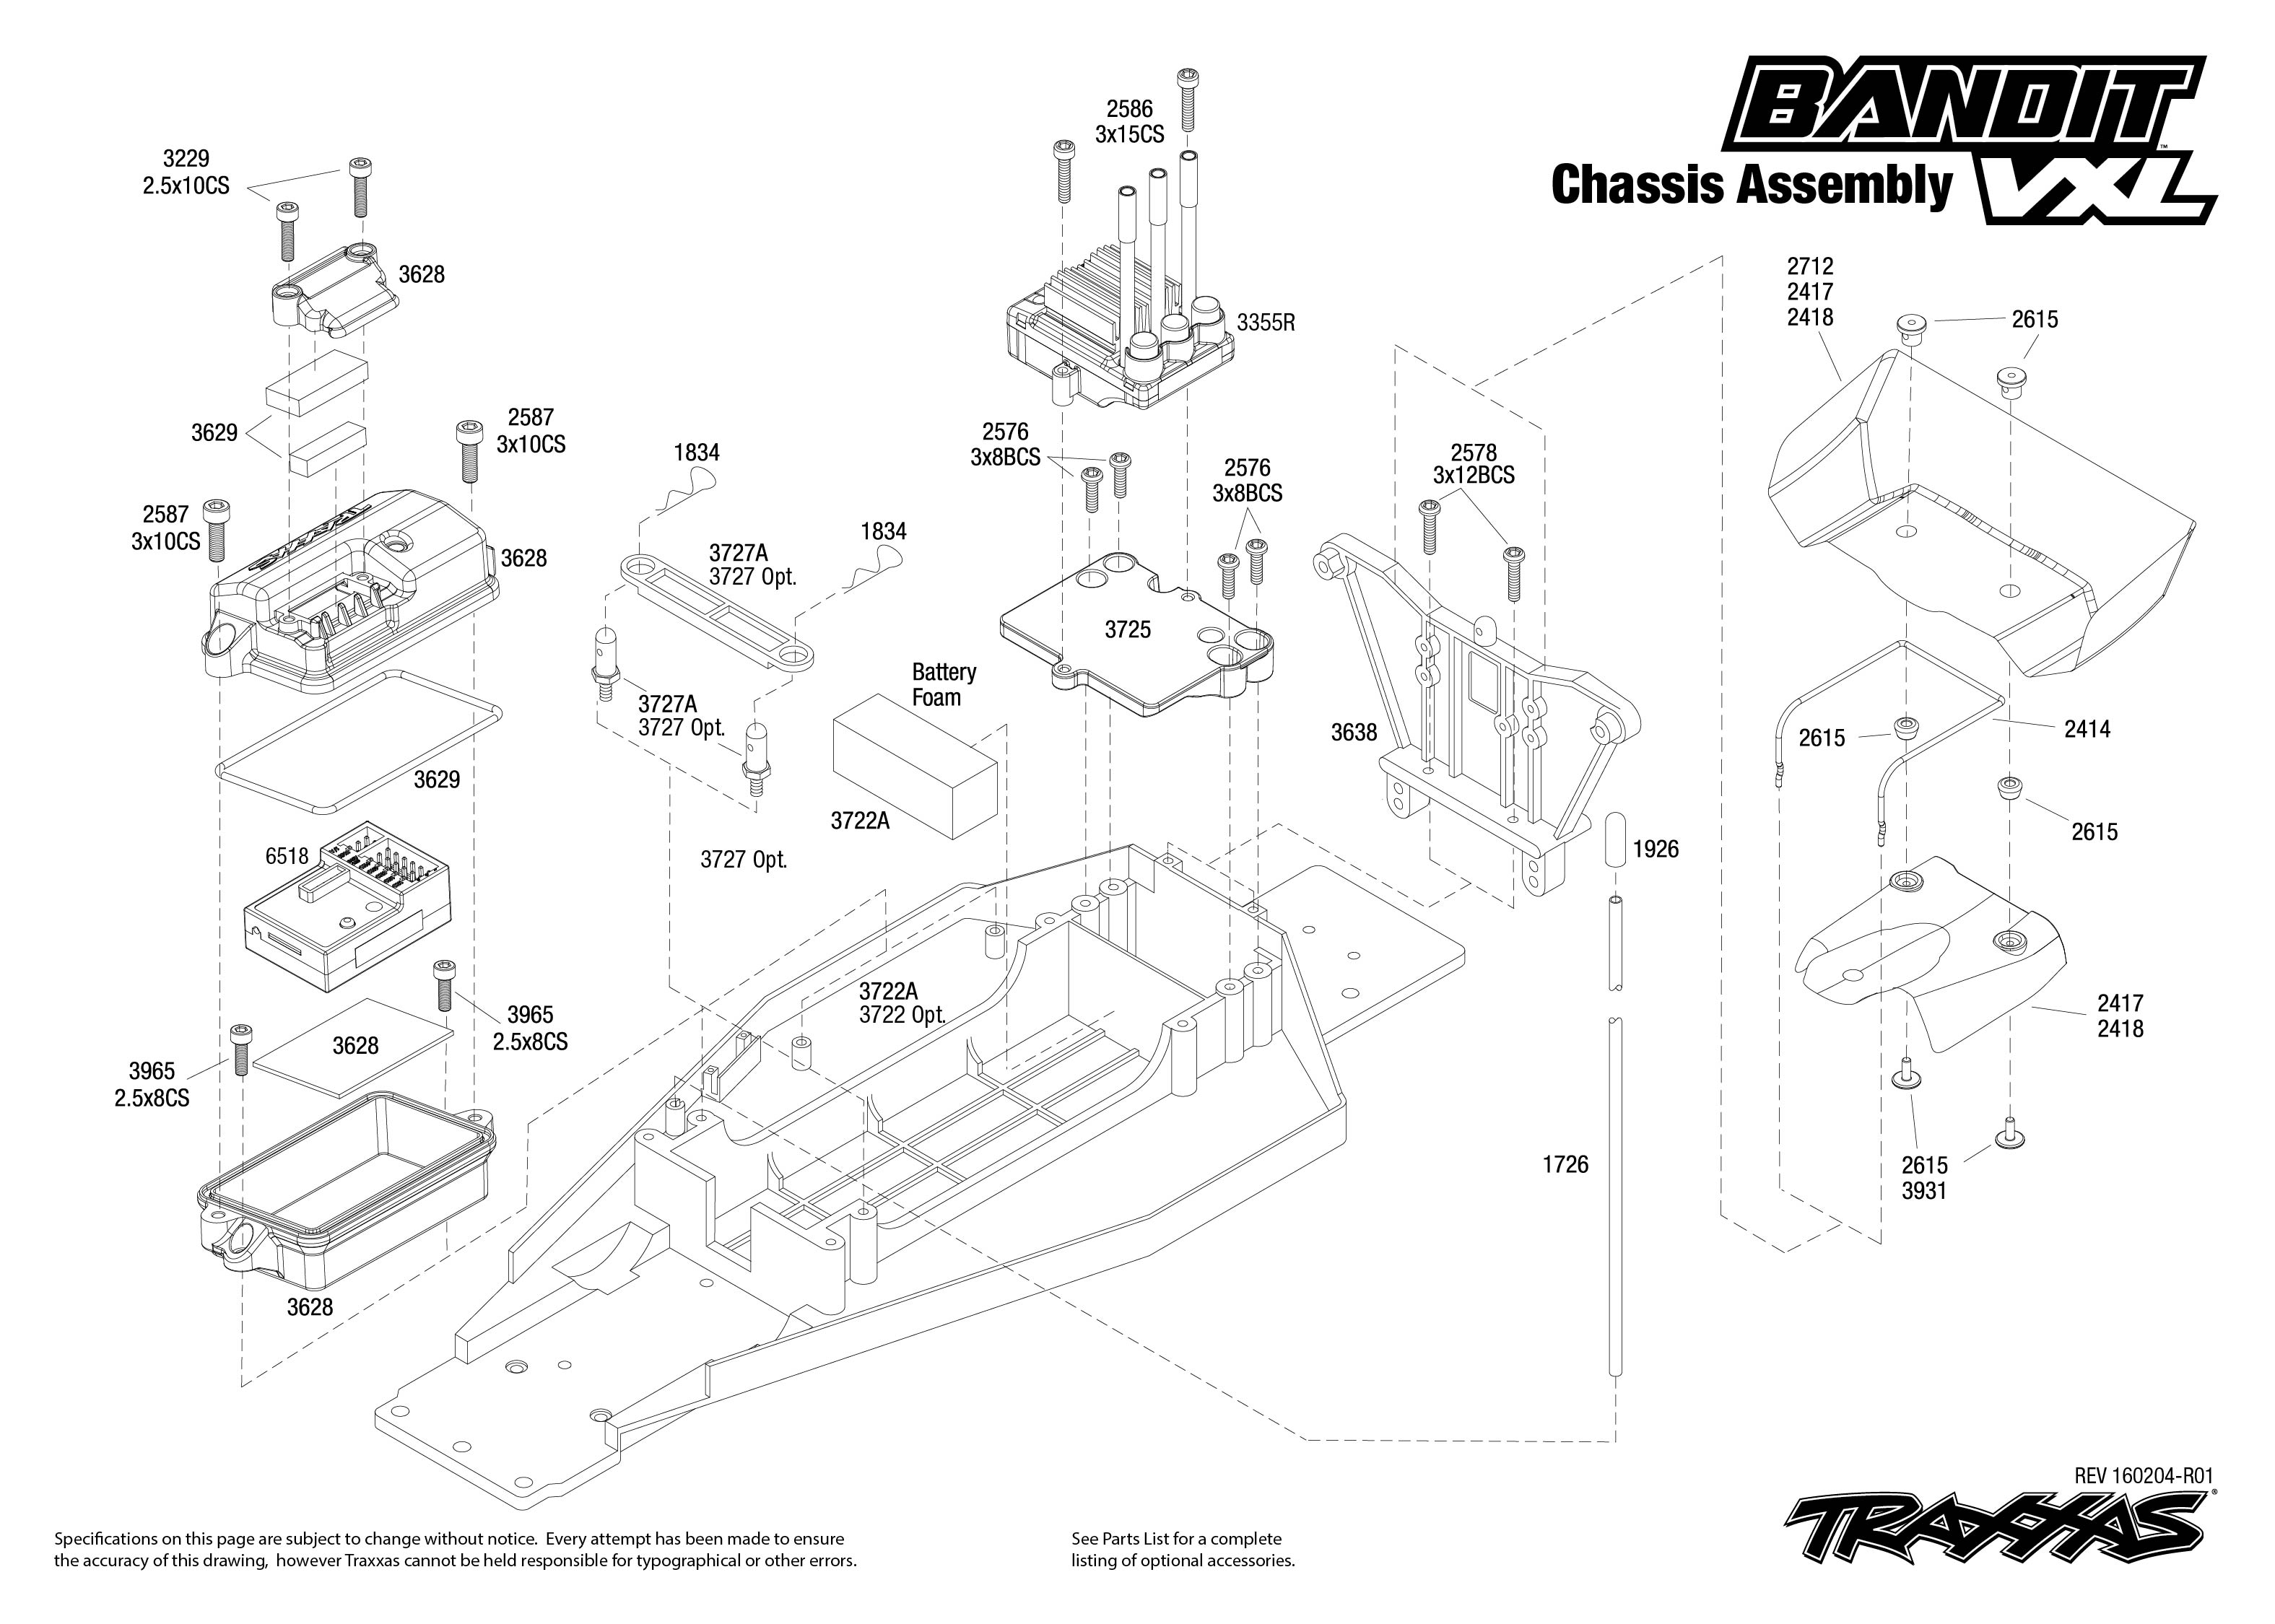 Bandit Vxl 1 Chassis Assembly Exploded View